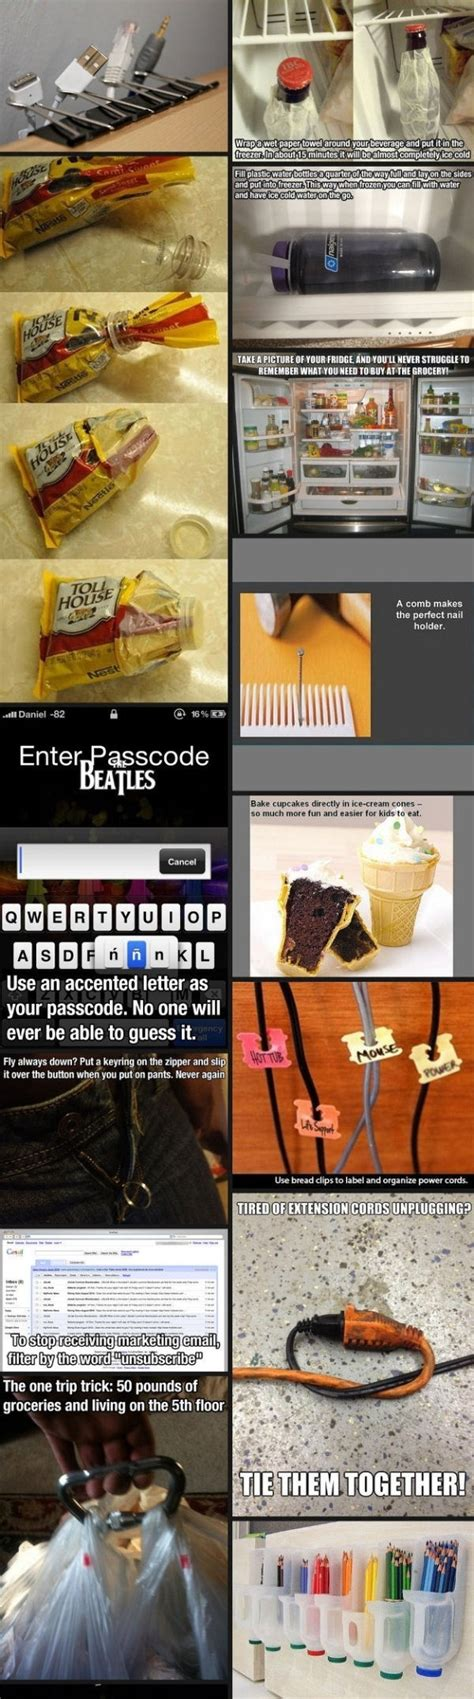 diy hack diy life hacks pictures photos and images for facebook